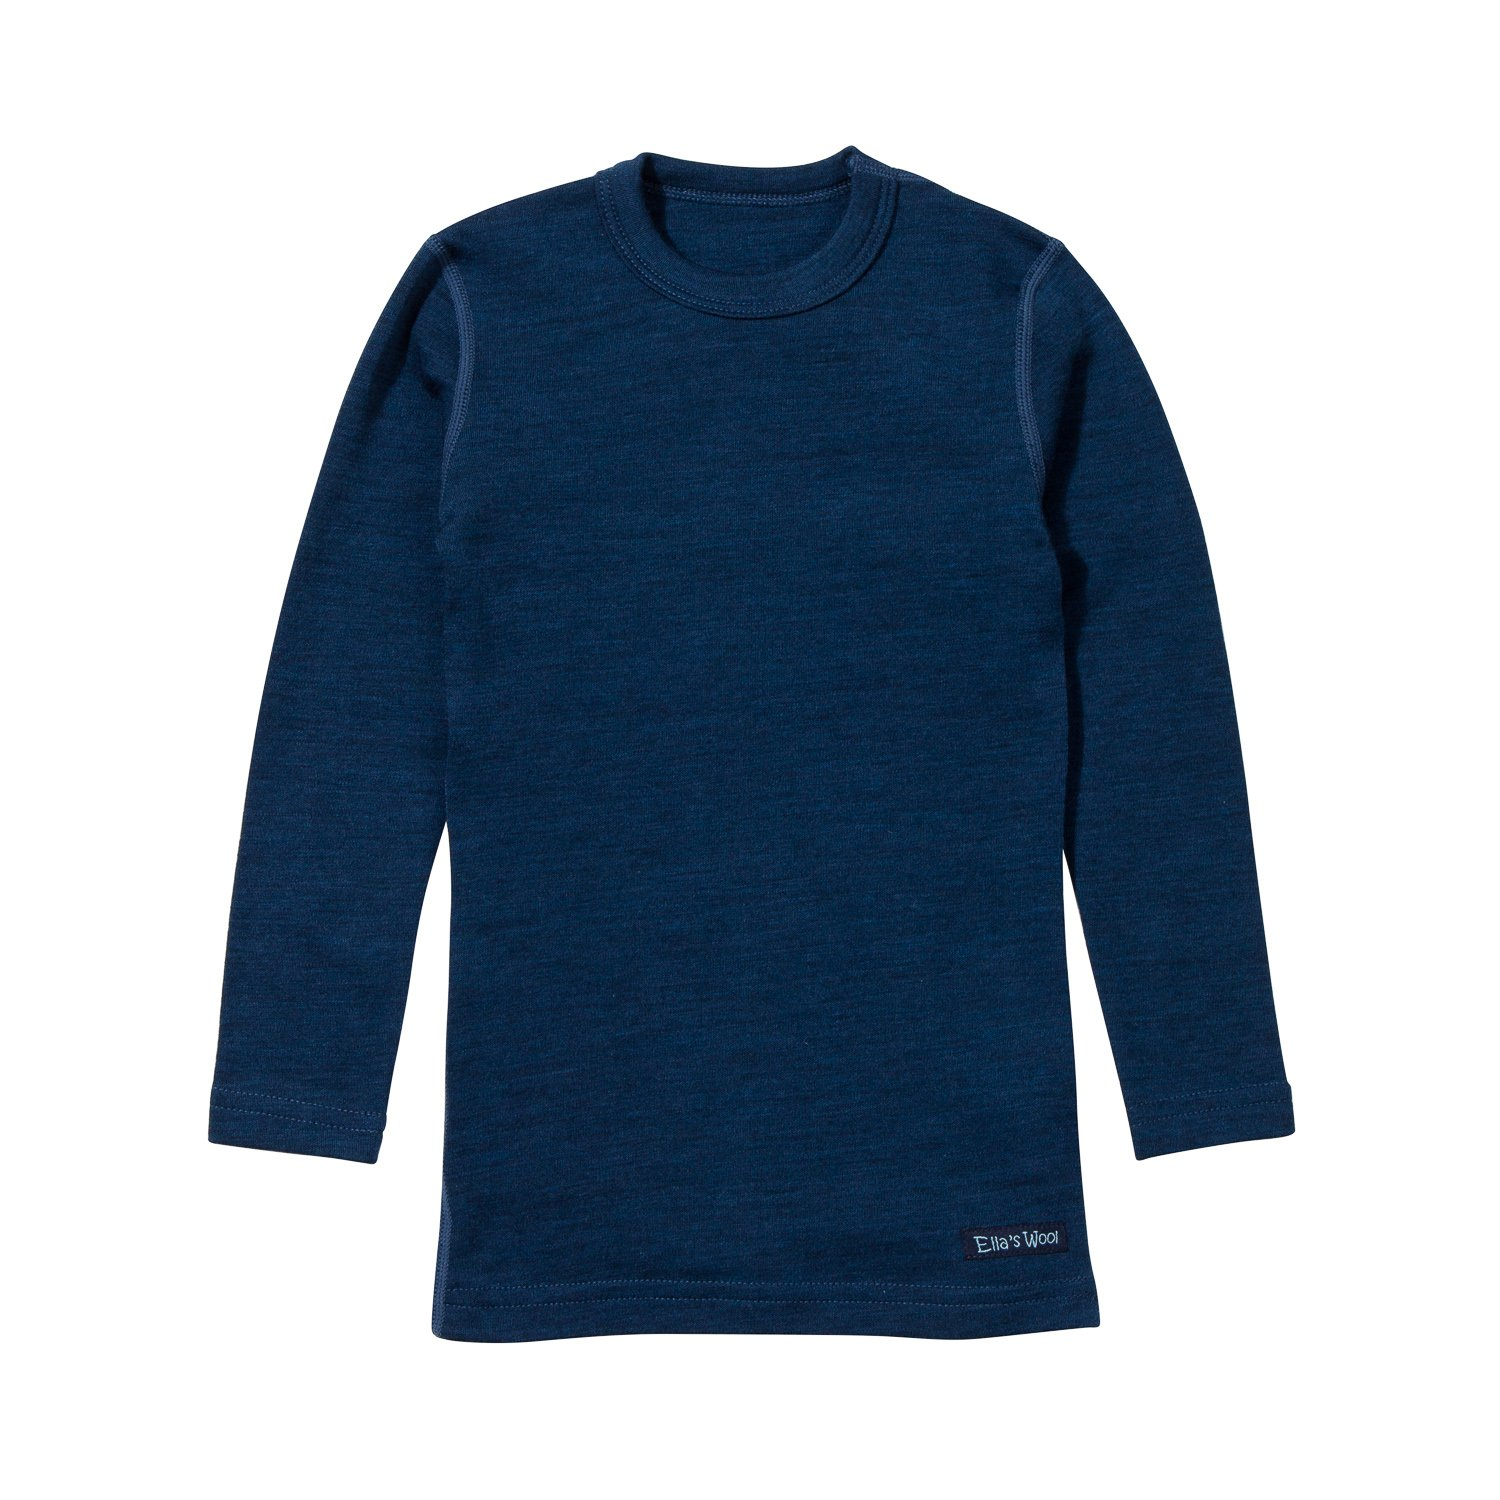 Ultrasoft Kid's 2-4Y Base Layer Merino Top (Navy Blue) by Ella's Wool